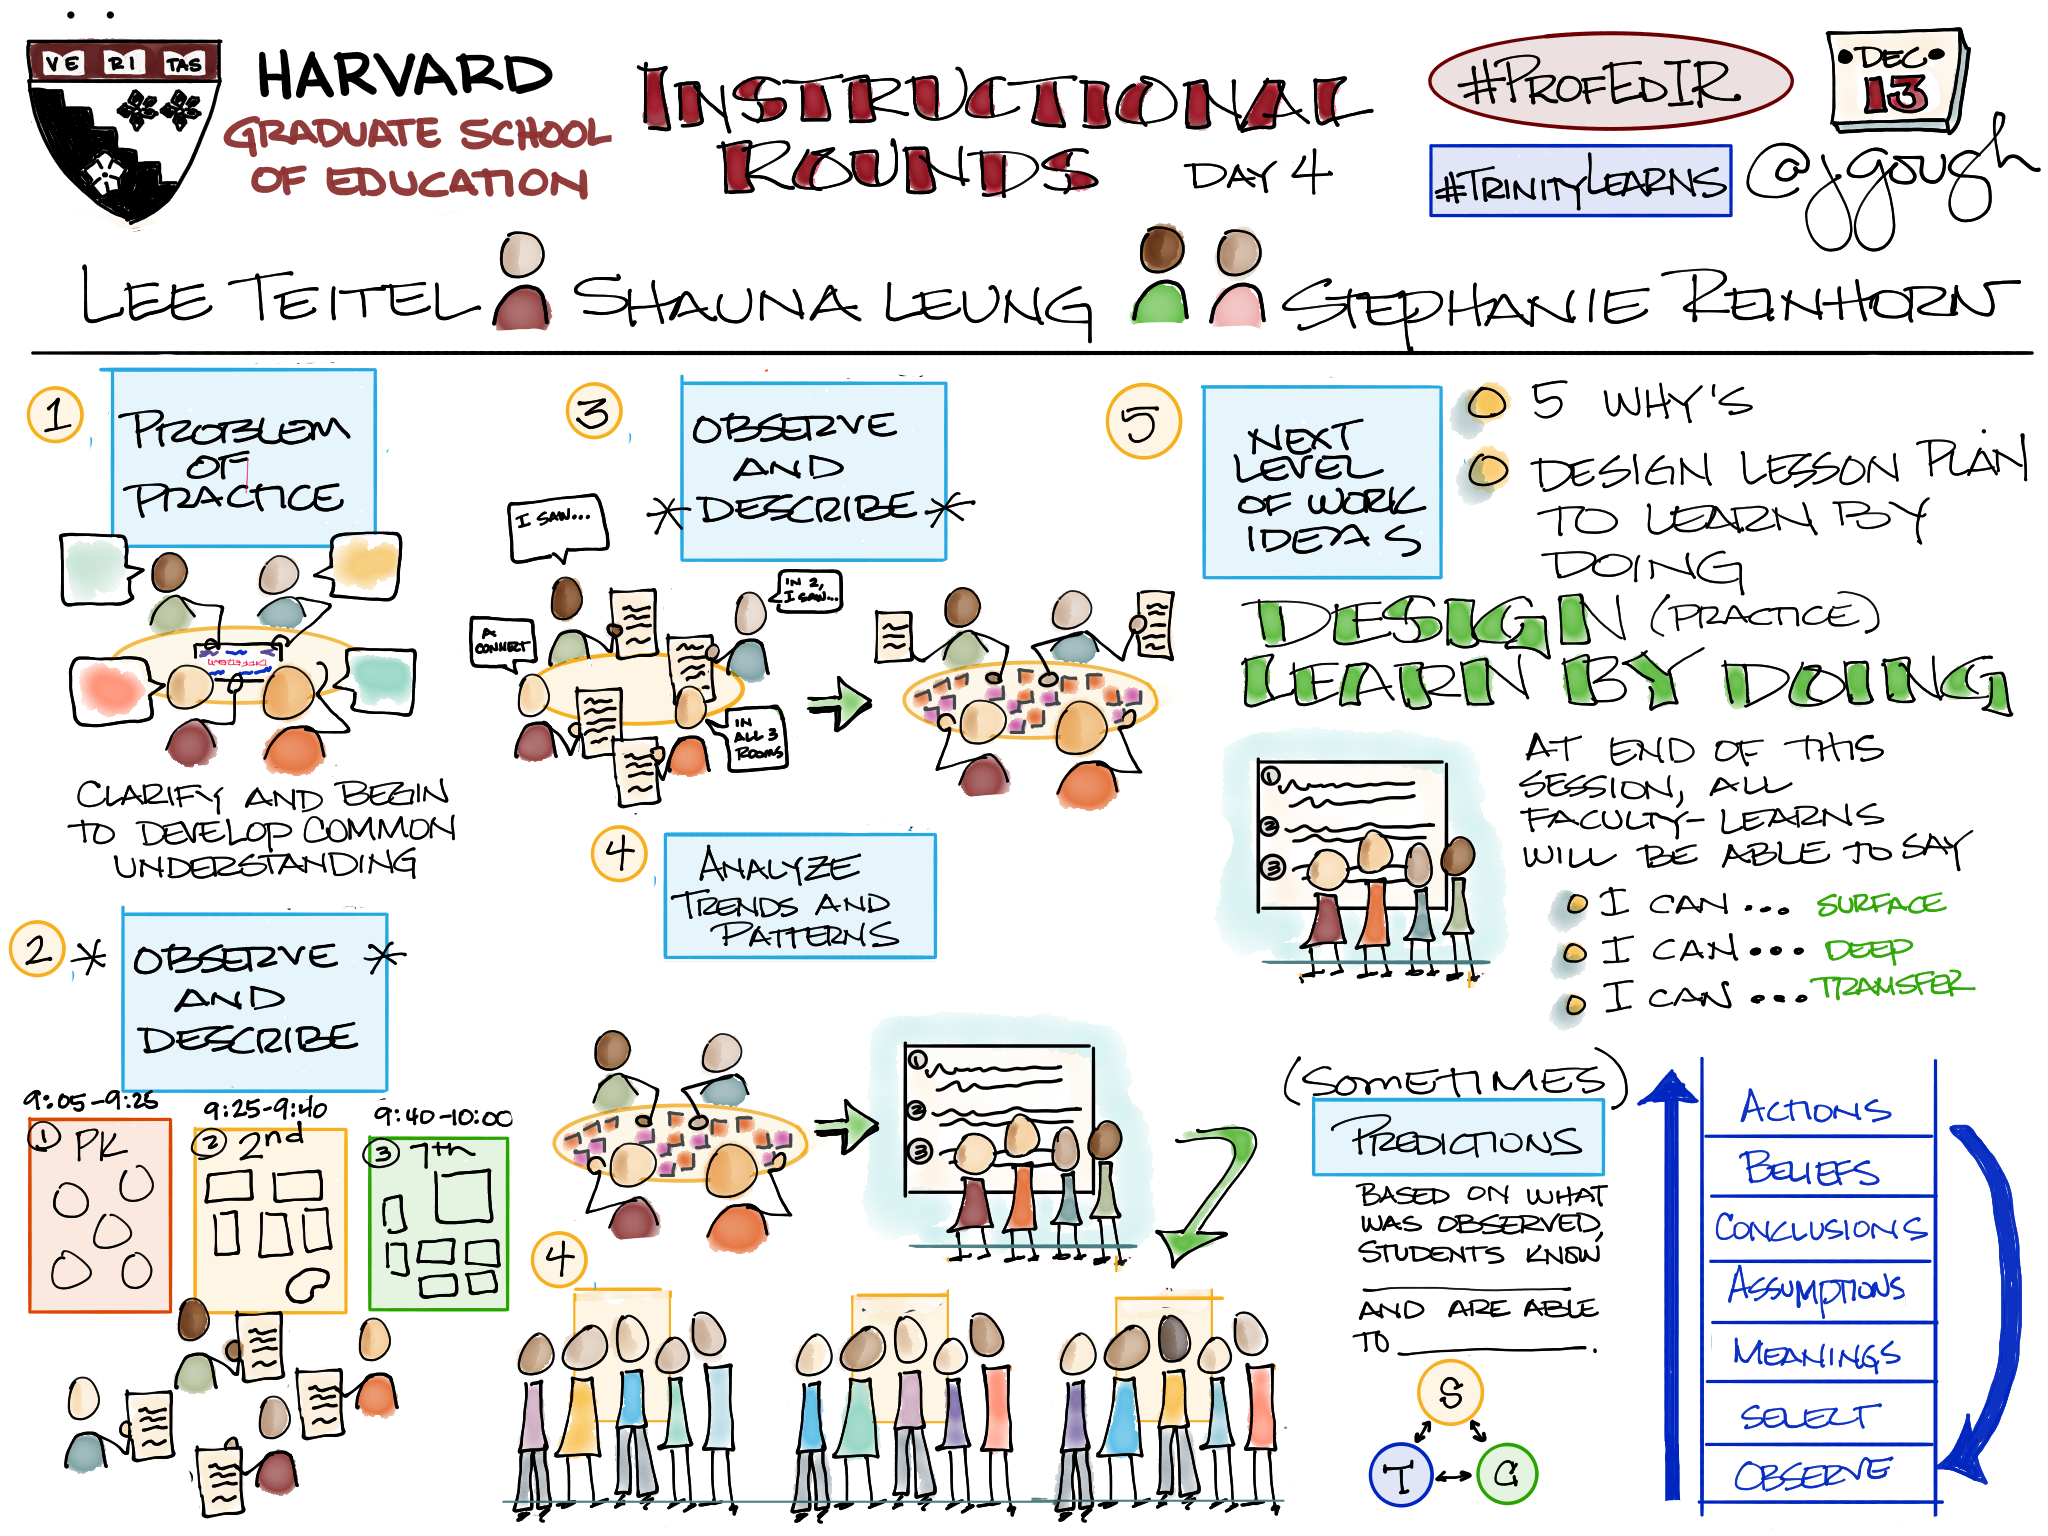 #ProfEdIR @HGSE Instructional Rounds in Practice (Day 4) – #TrinityLearns by doing